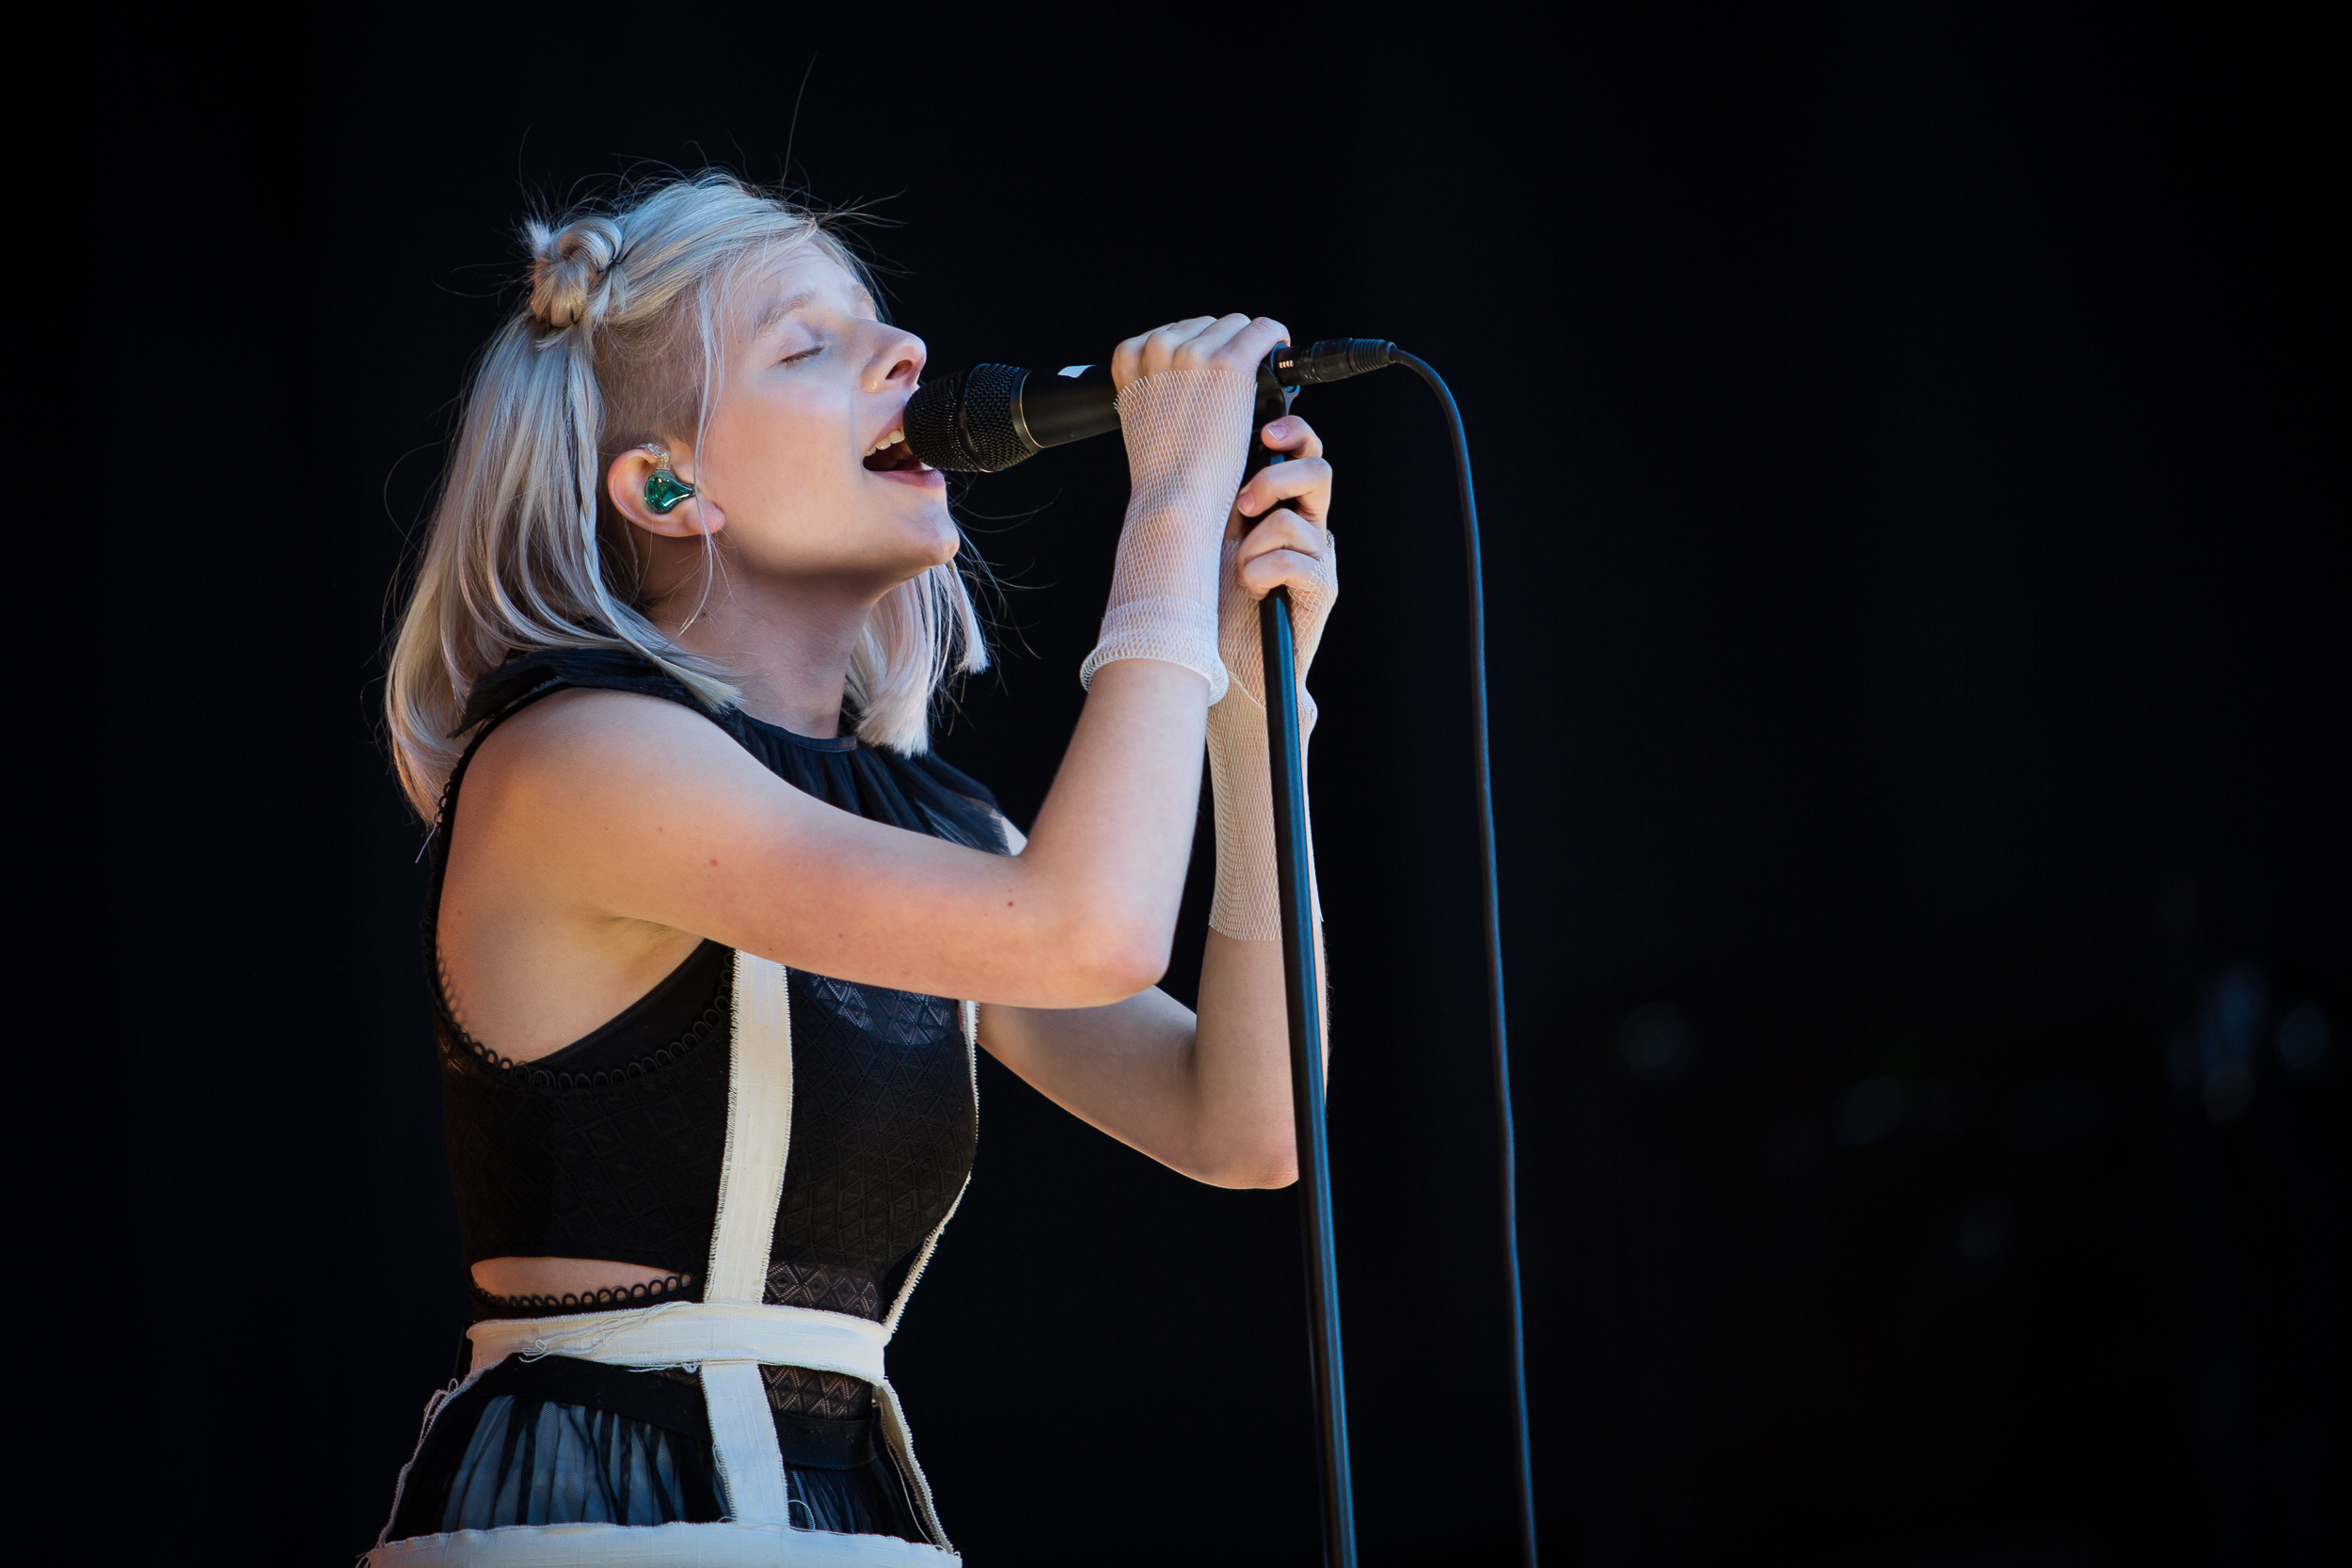 AURORA at Øyafestivalen